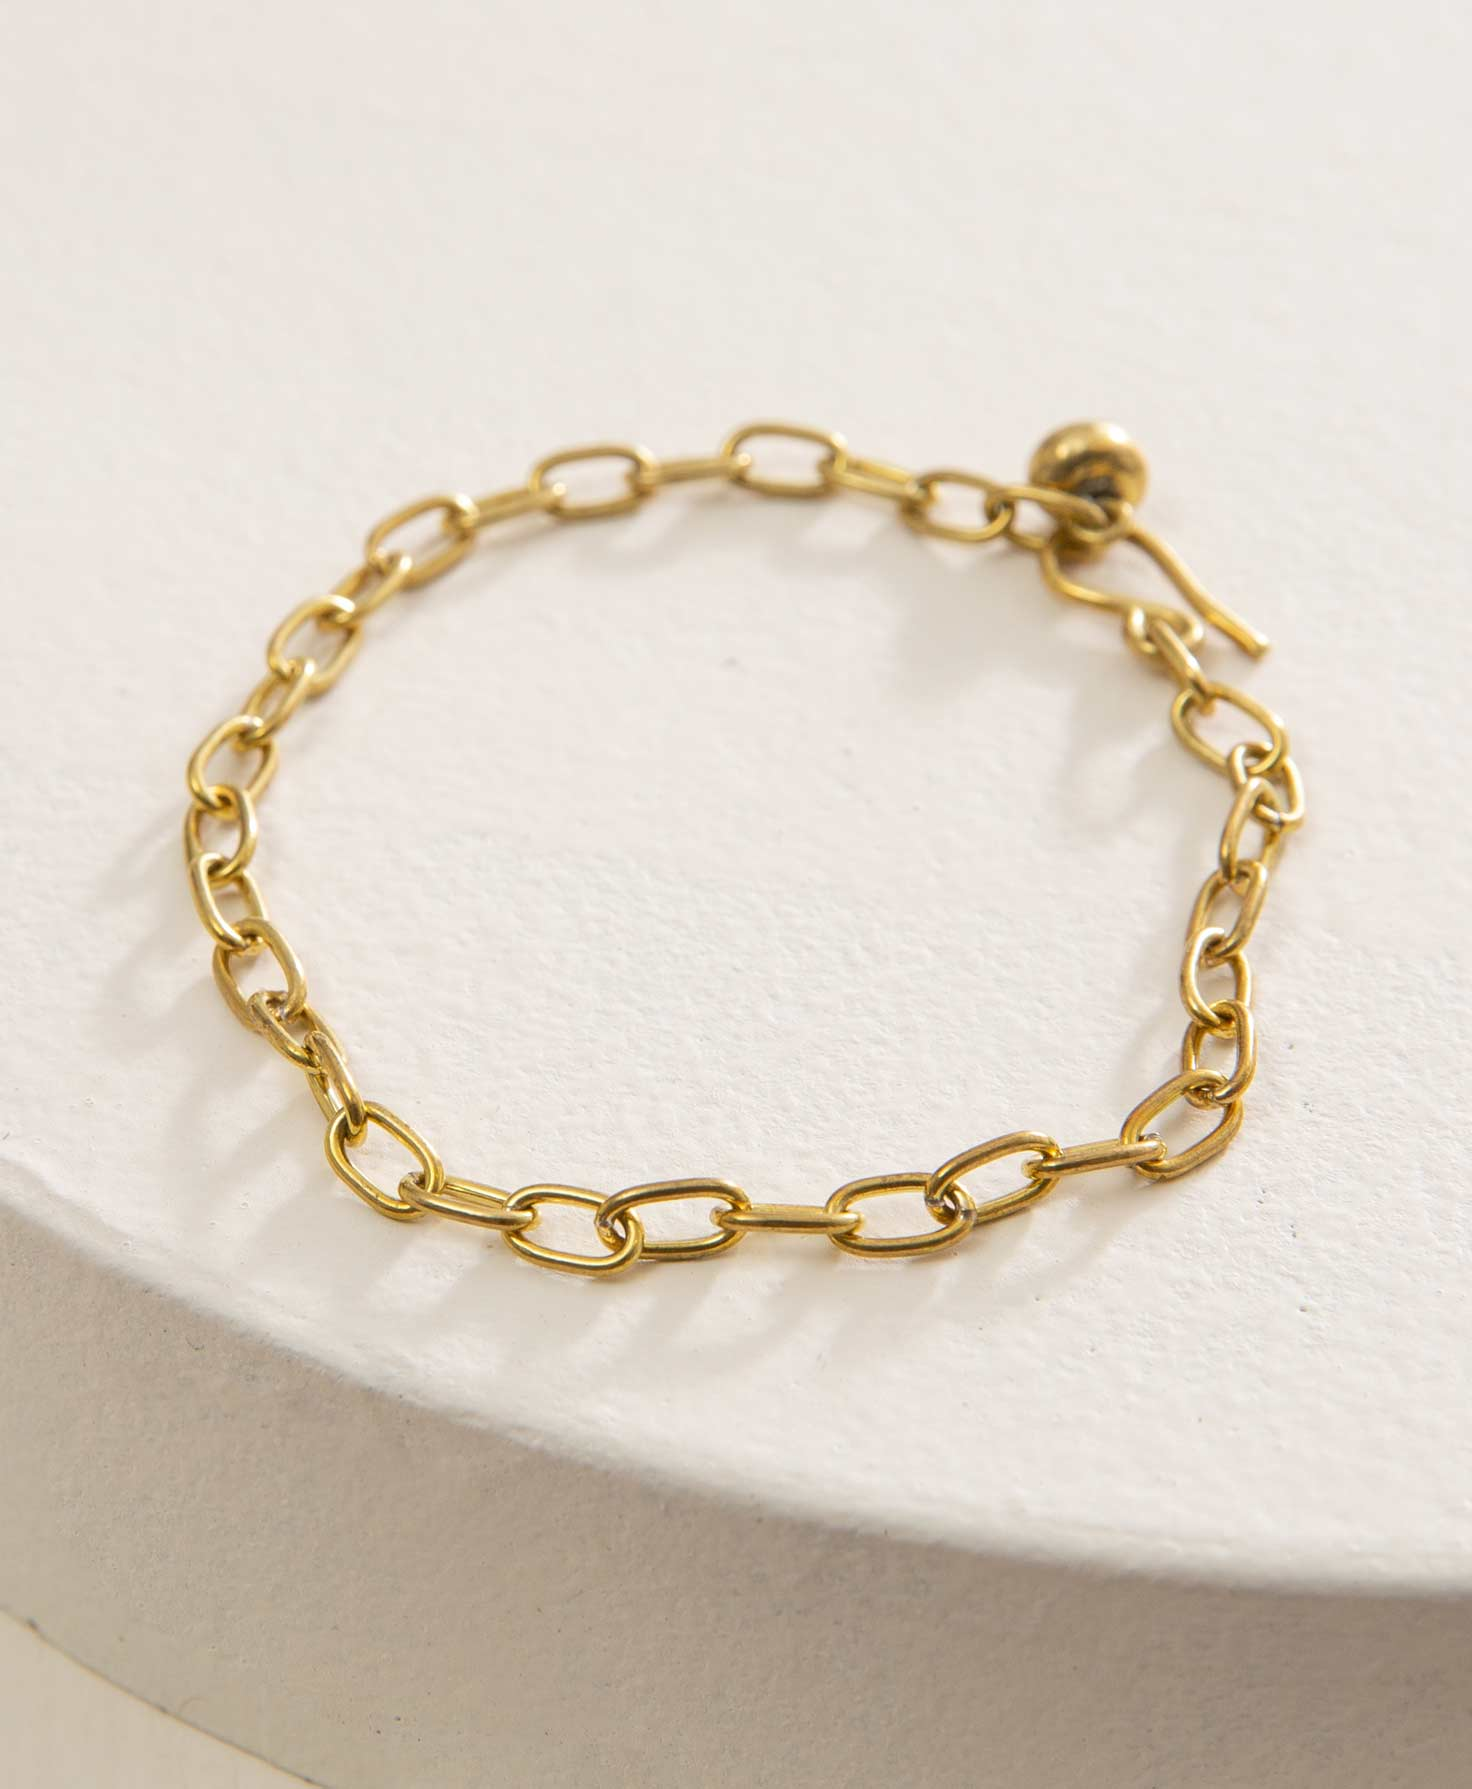 The Infinity Bracelet lays on a white surface. It is a simple chain-link style bracelet made entirely of shining brass. The links of the chain are oval shaped. At the back of the bracelet, a brass hook is shown looping through the final link in the chain, securing the bracelet in place. However, the hook can be linked through any of the chain links, making the bracelet adjustable.